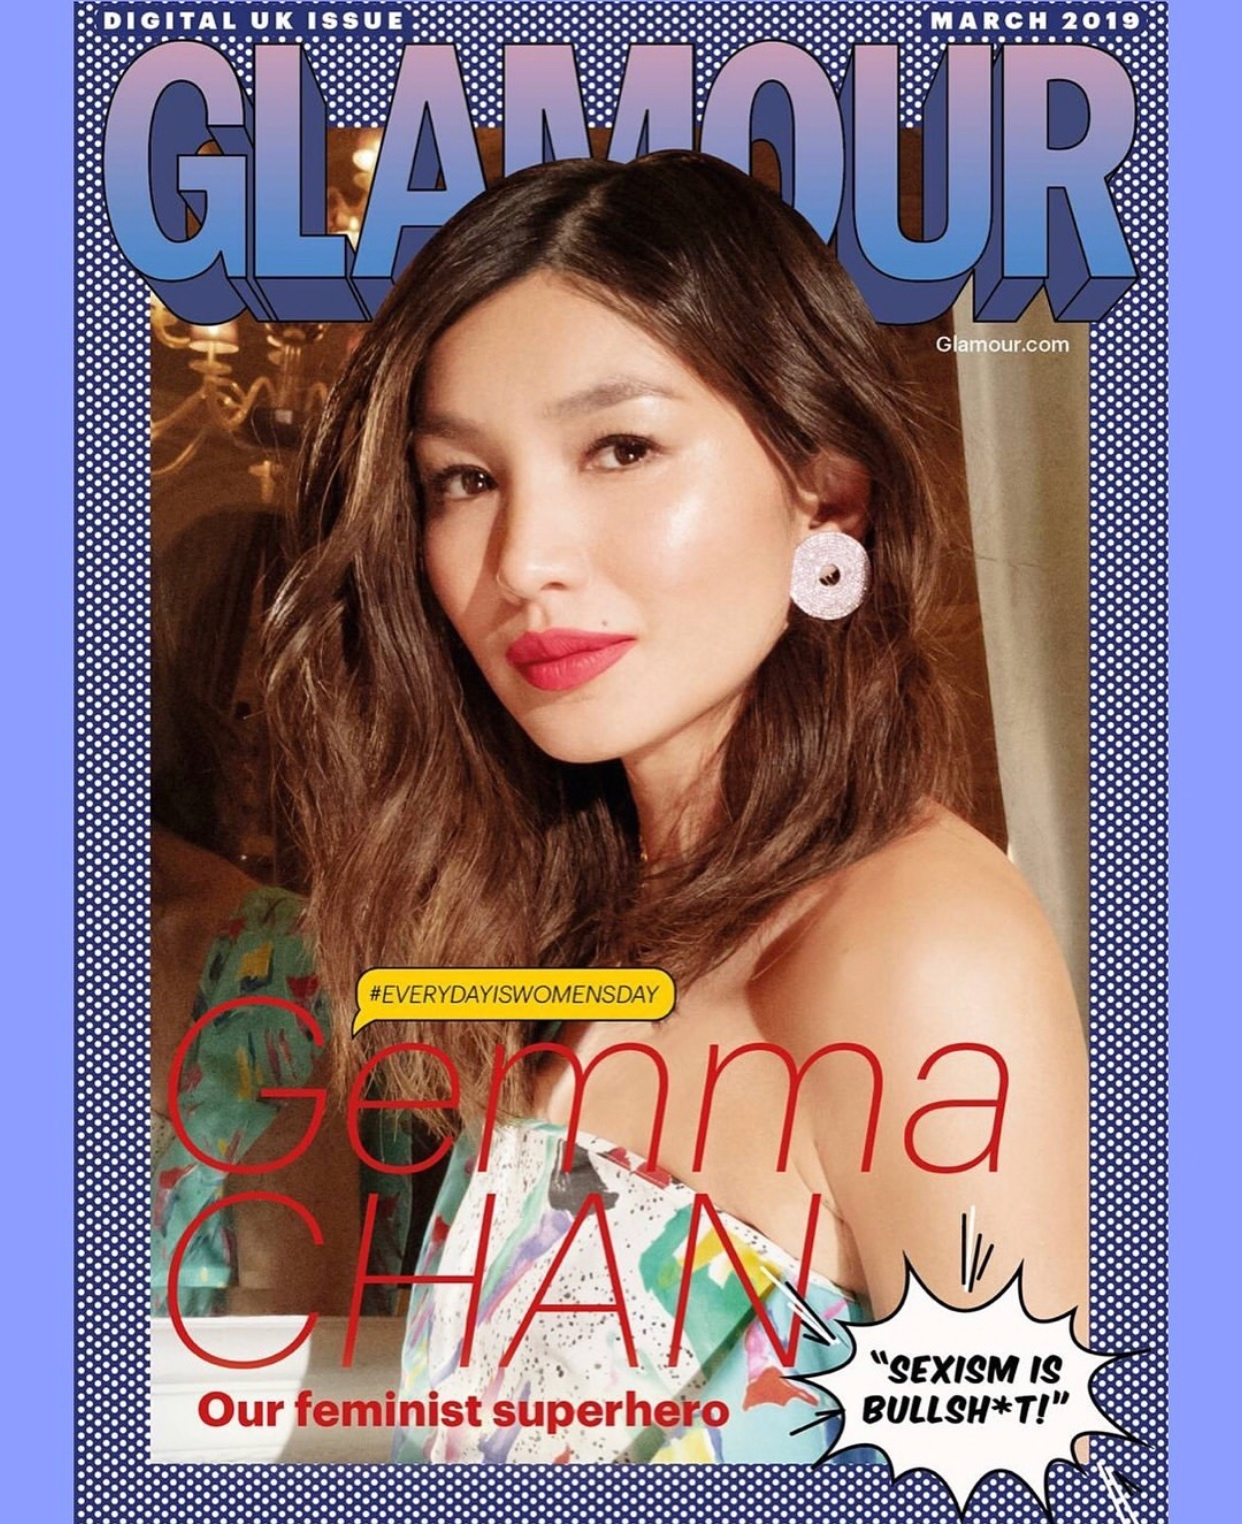 GEMMA CHAN GLAMOUR UK MARCH 2019